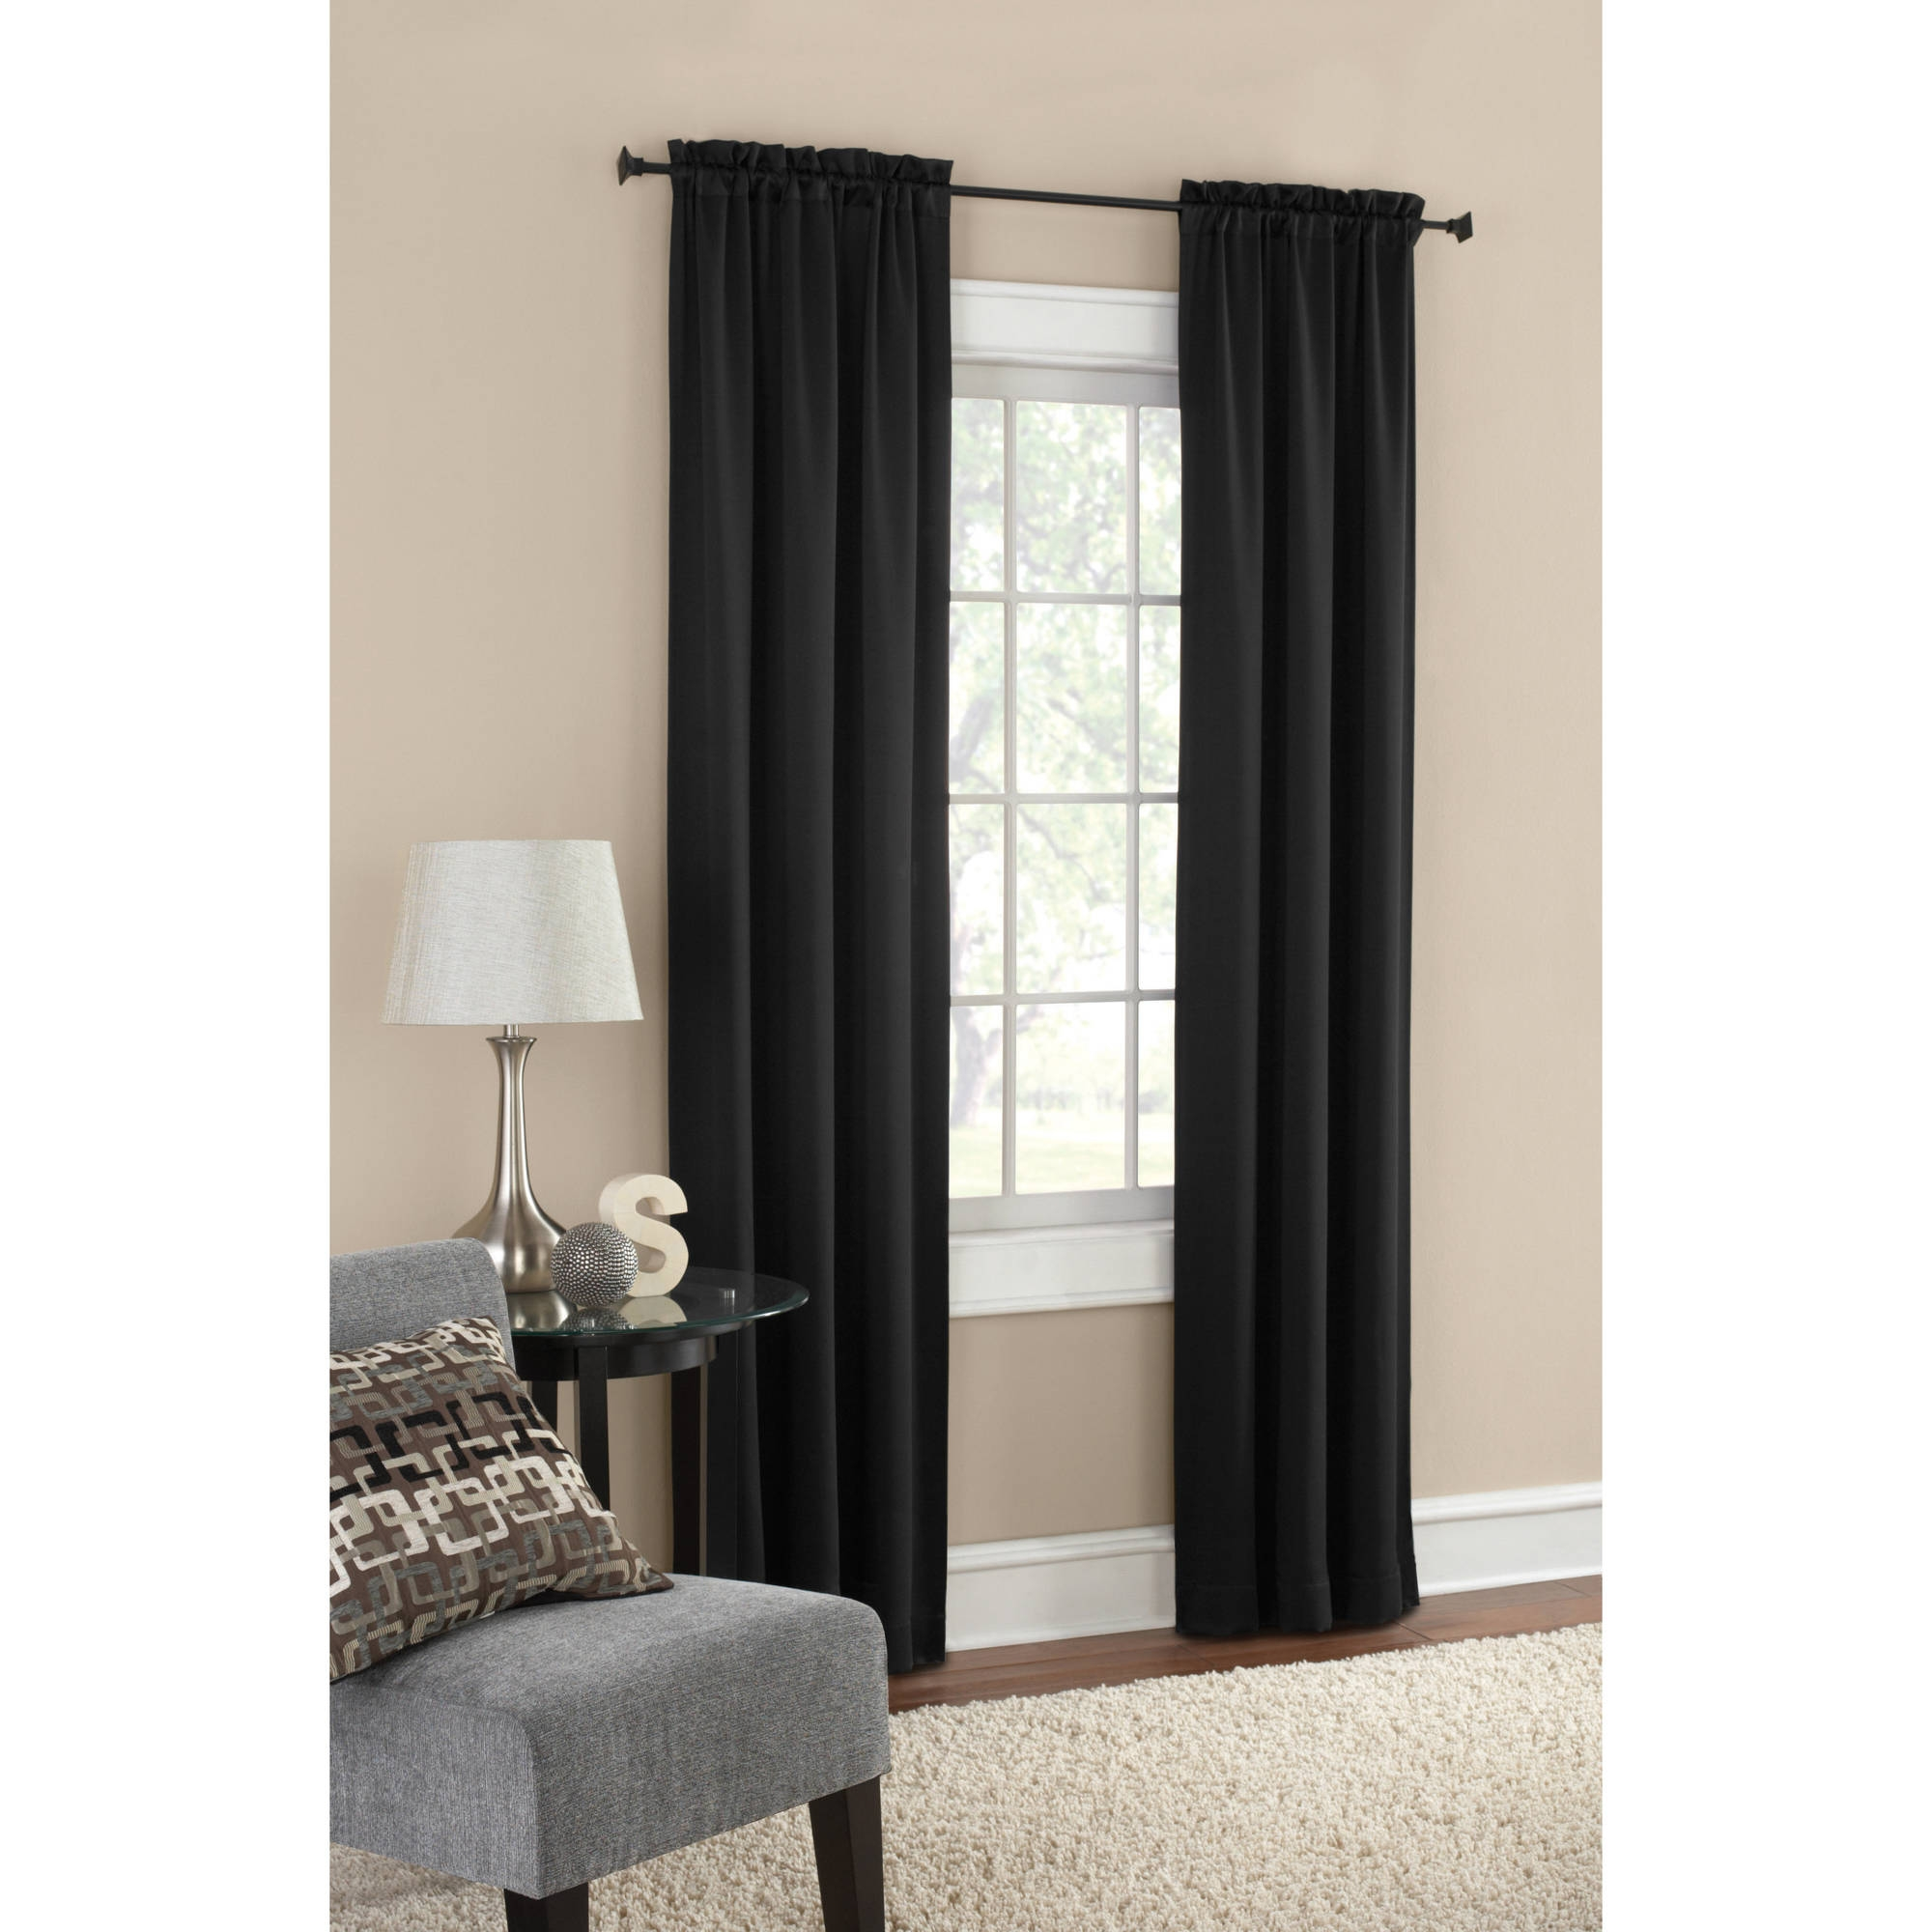 Energy Efficient Blackout Curtains Walmart Intended For Thermal Bedroom Curtains (View 12 of 15)